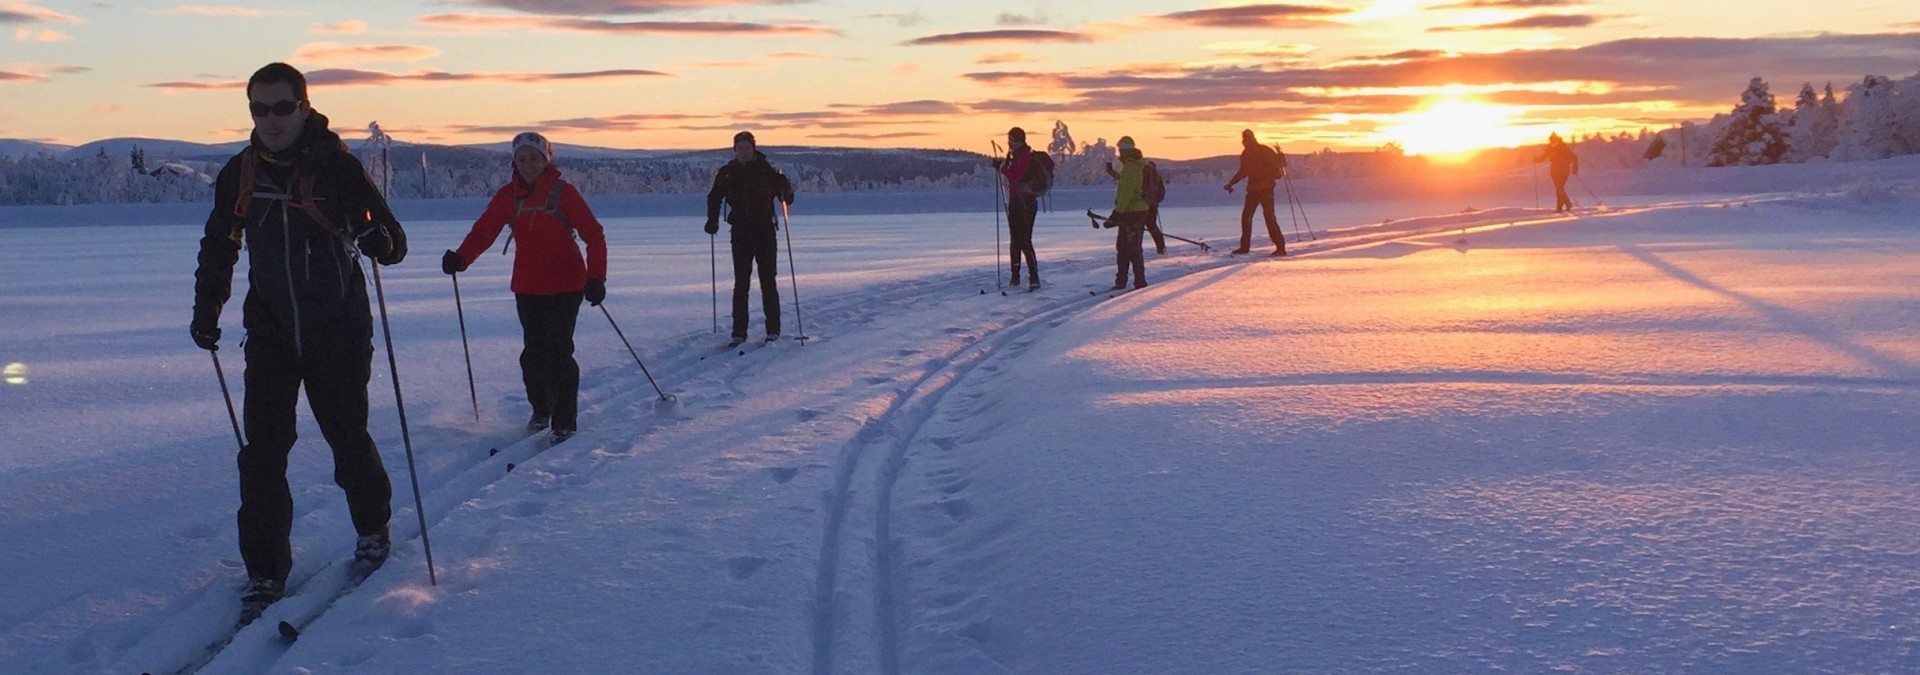 Putting our new found skills into practice on a ski journey in the sunset. Glorious!